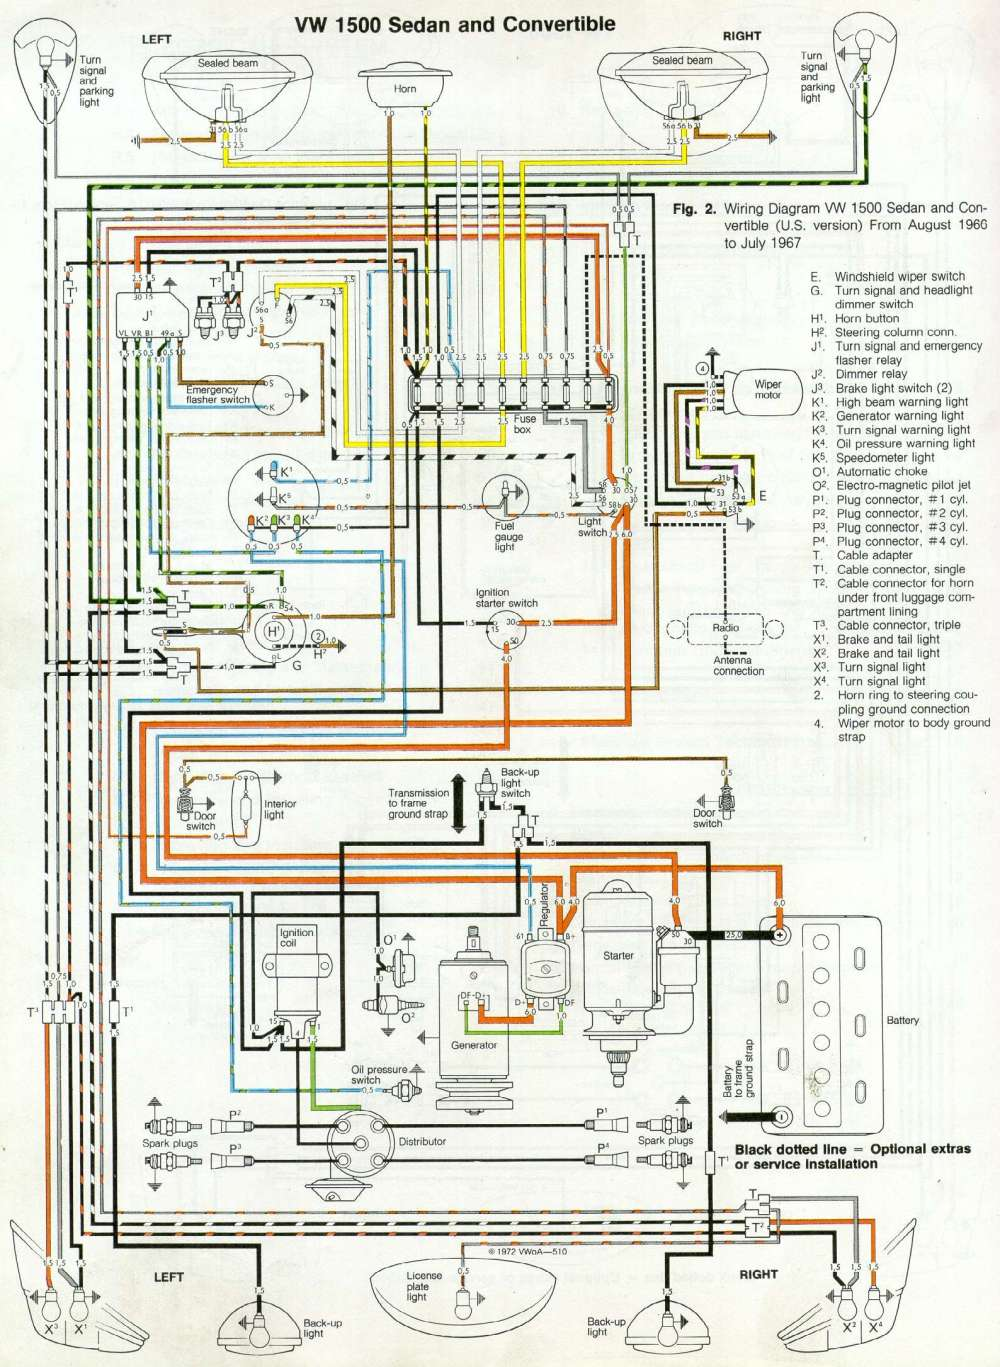 medium resolution of 72 vw engine diagram wiring library rh 60 skriptoase de vw 1600 single port 36 horse vw engine